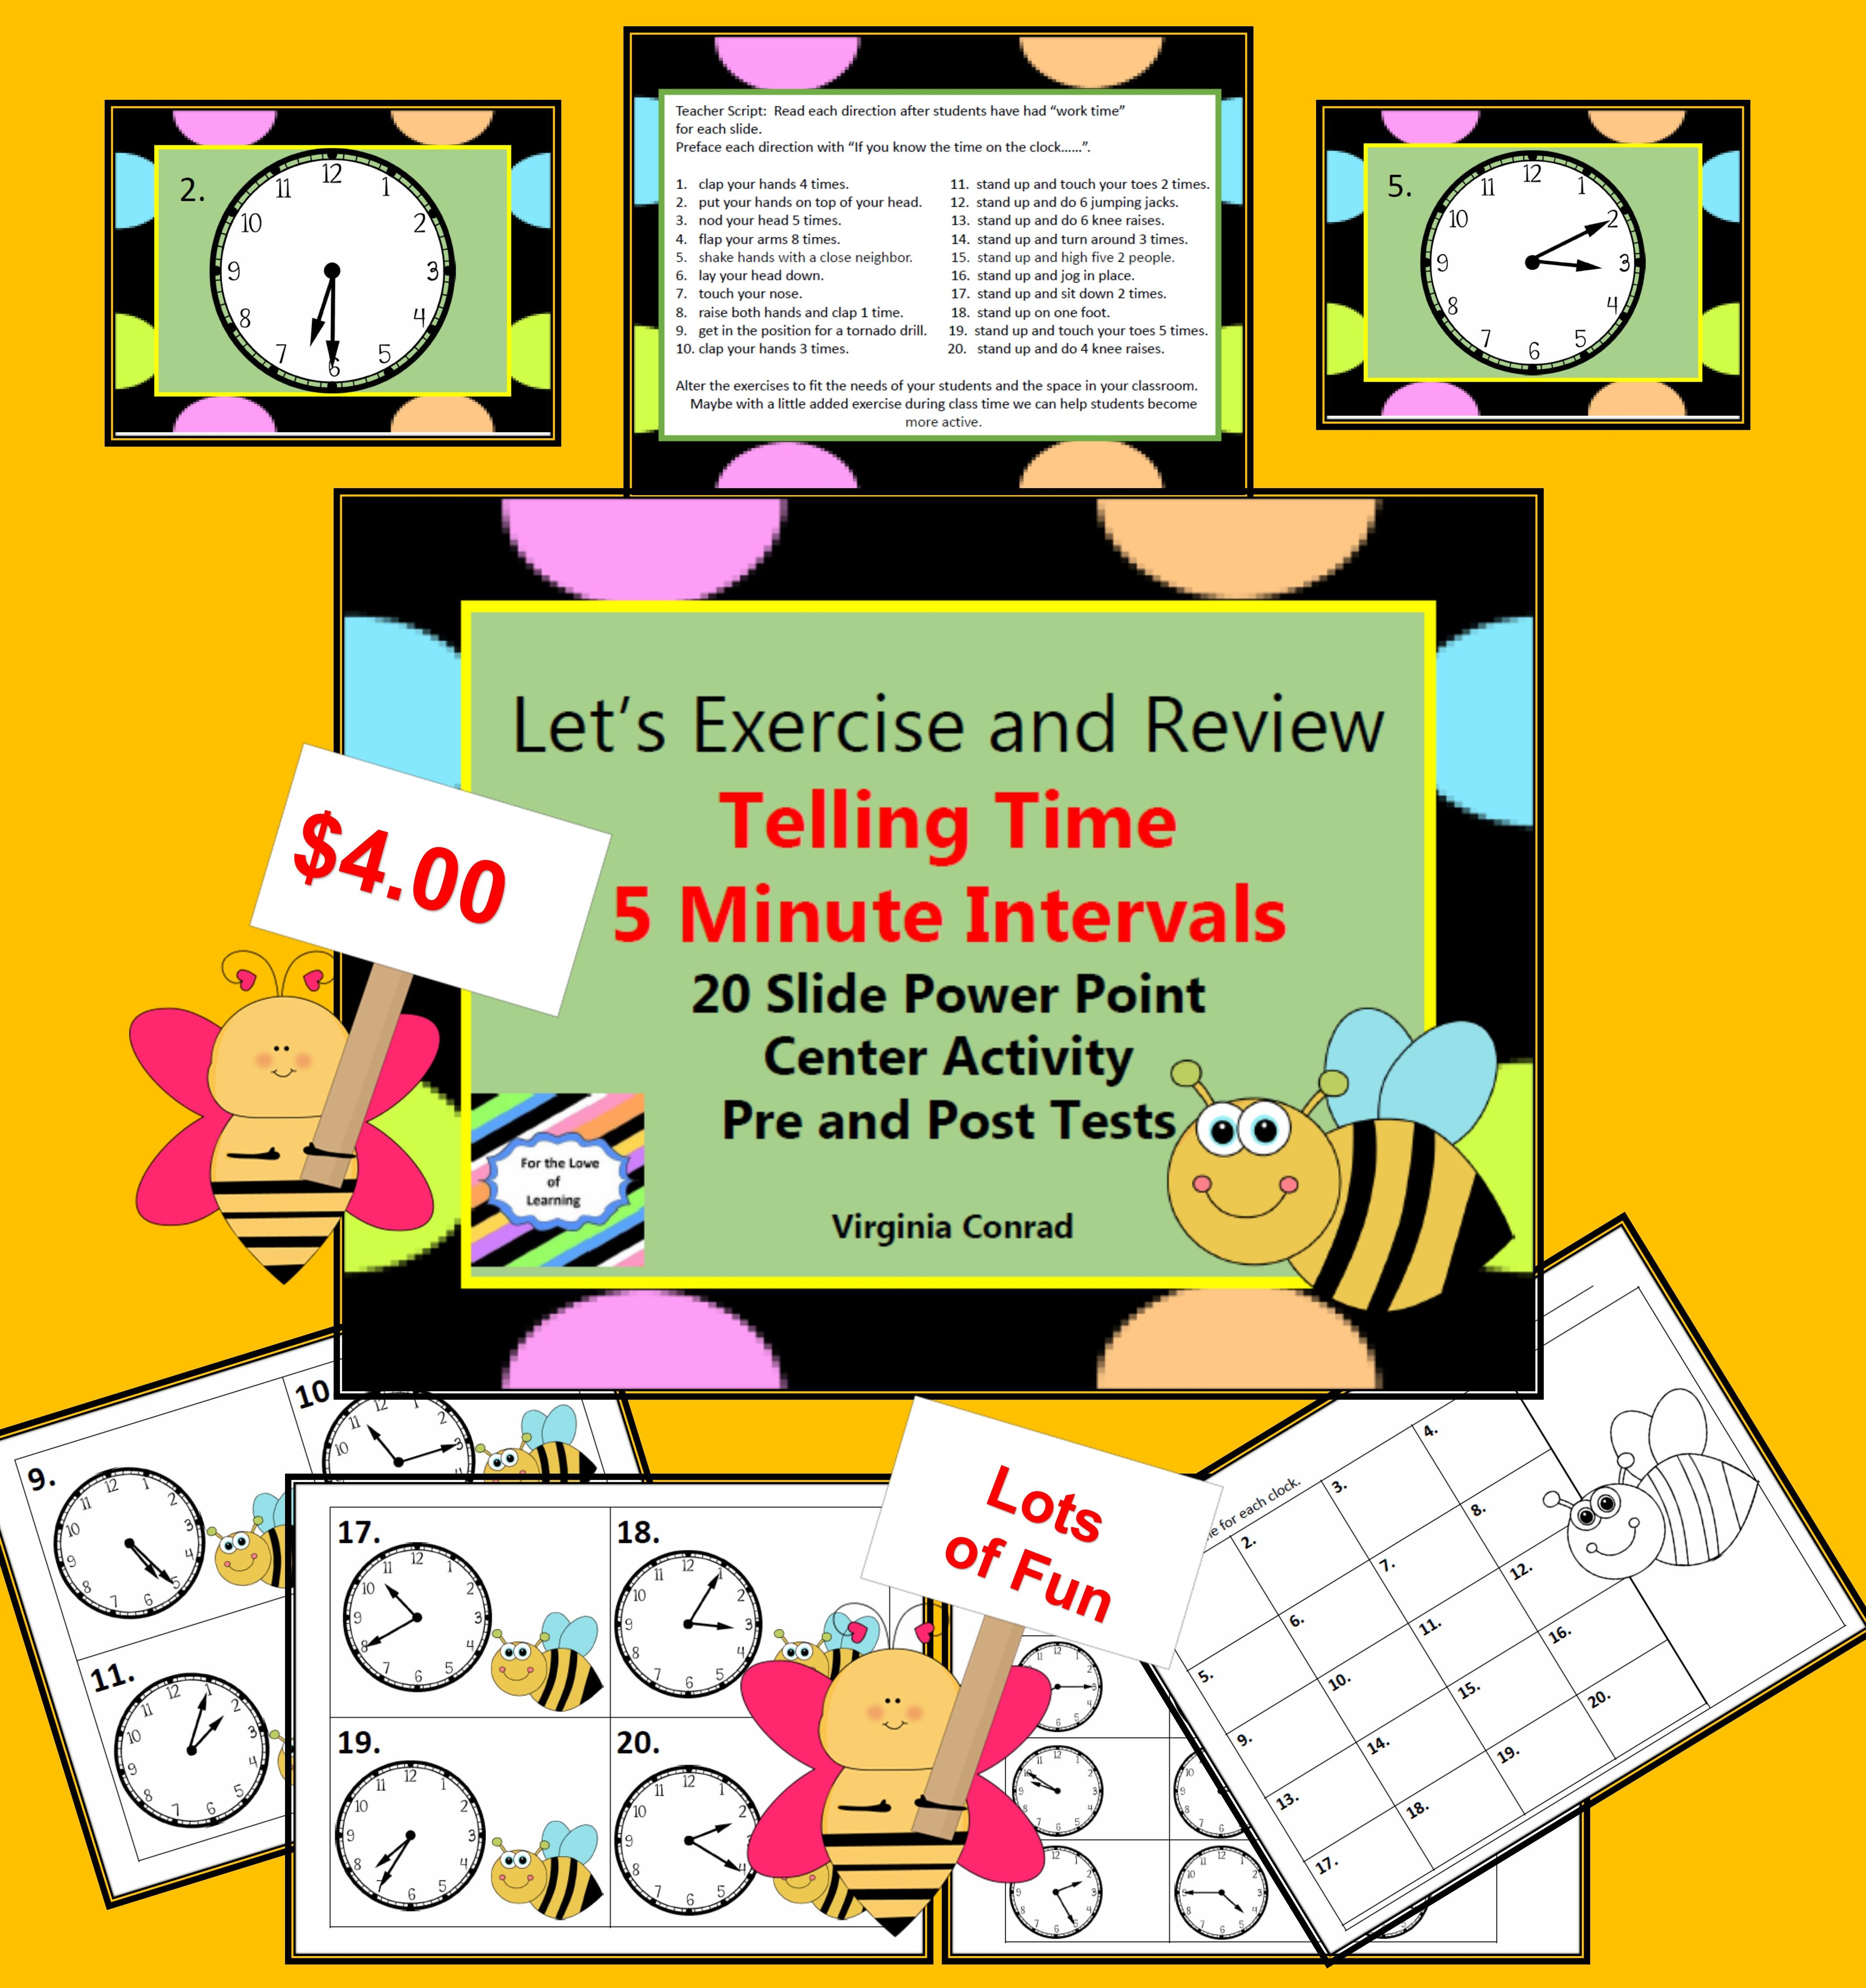 Telling Time To 5 Minute Intervals With Images